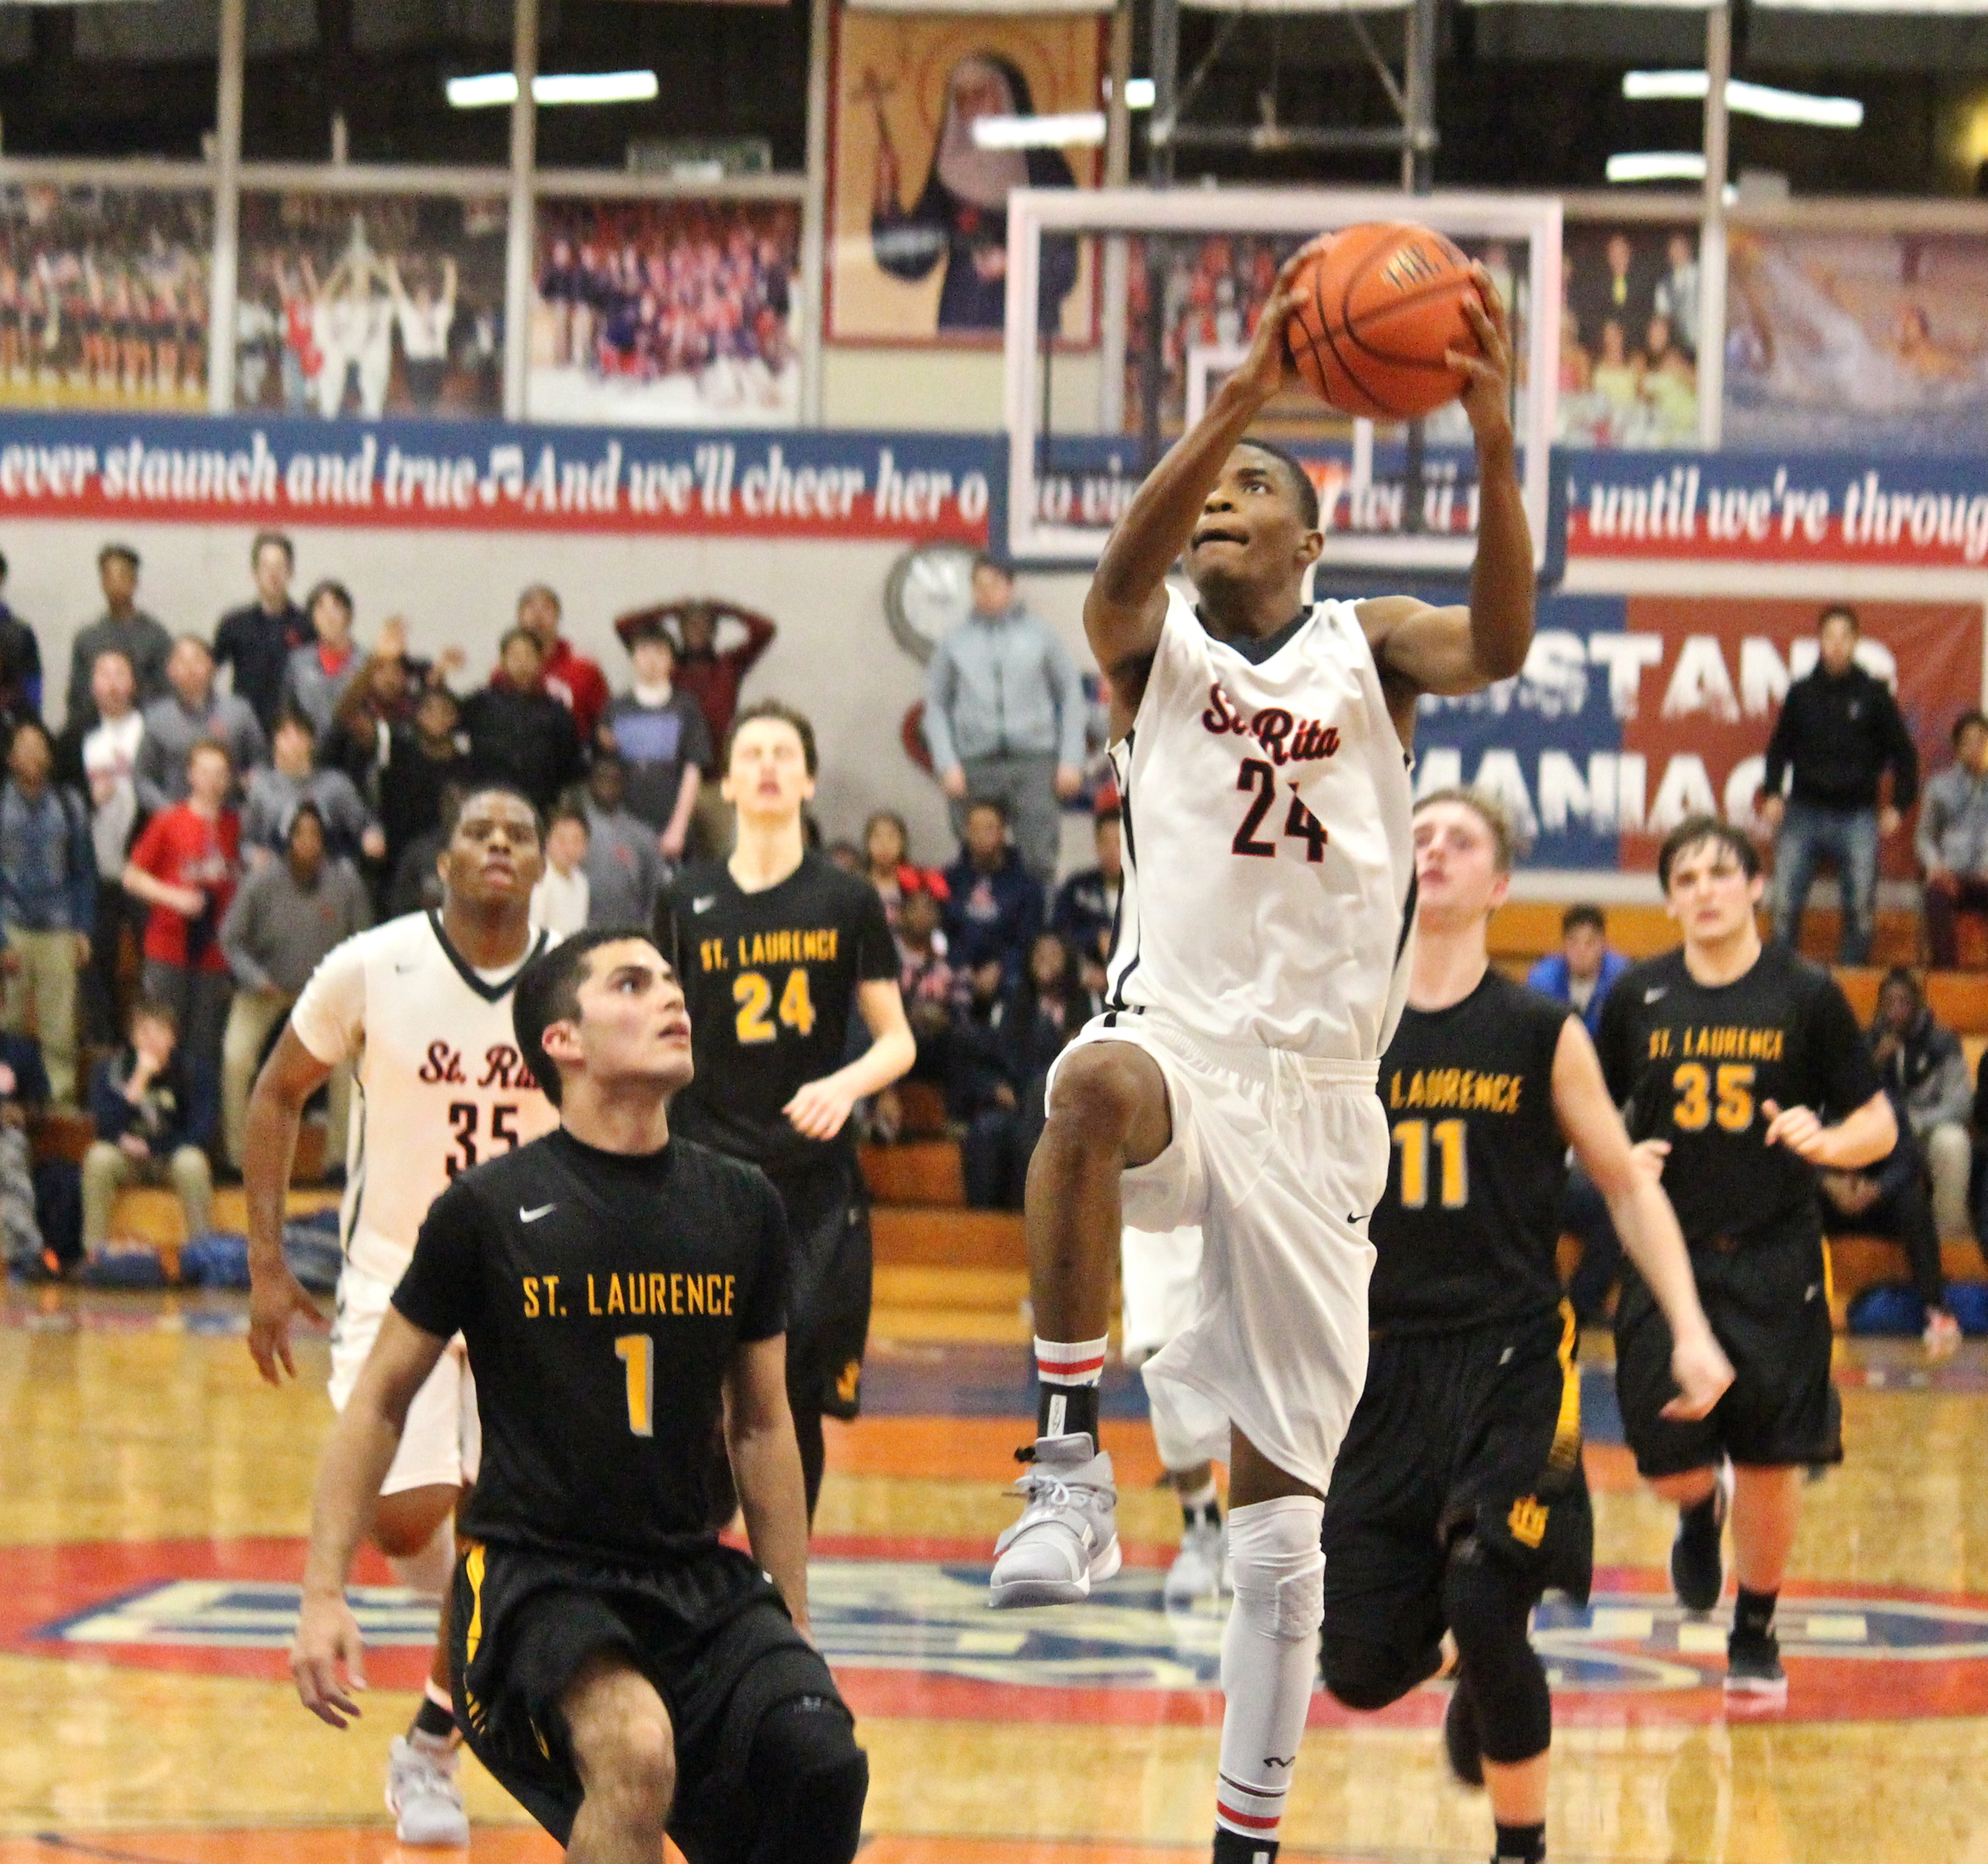 Christ Williams converts a break-away lay-up against St. Laurence.